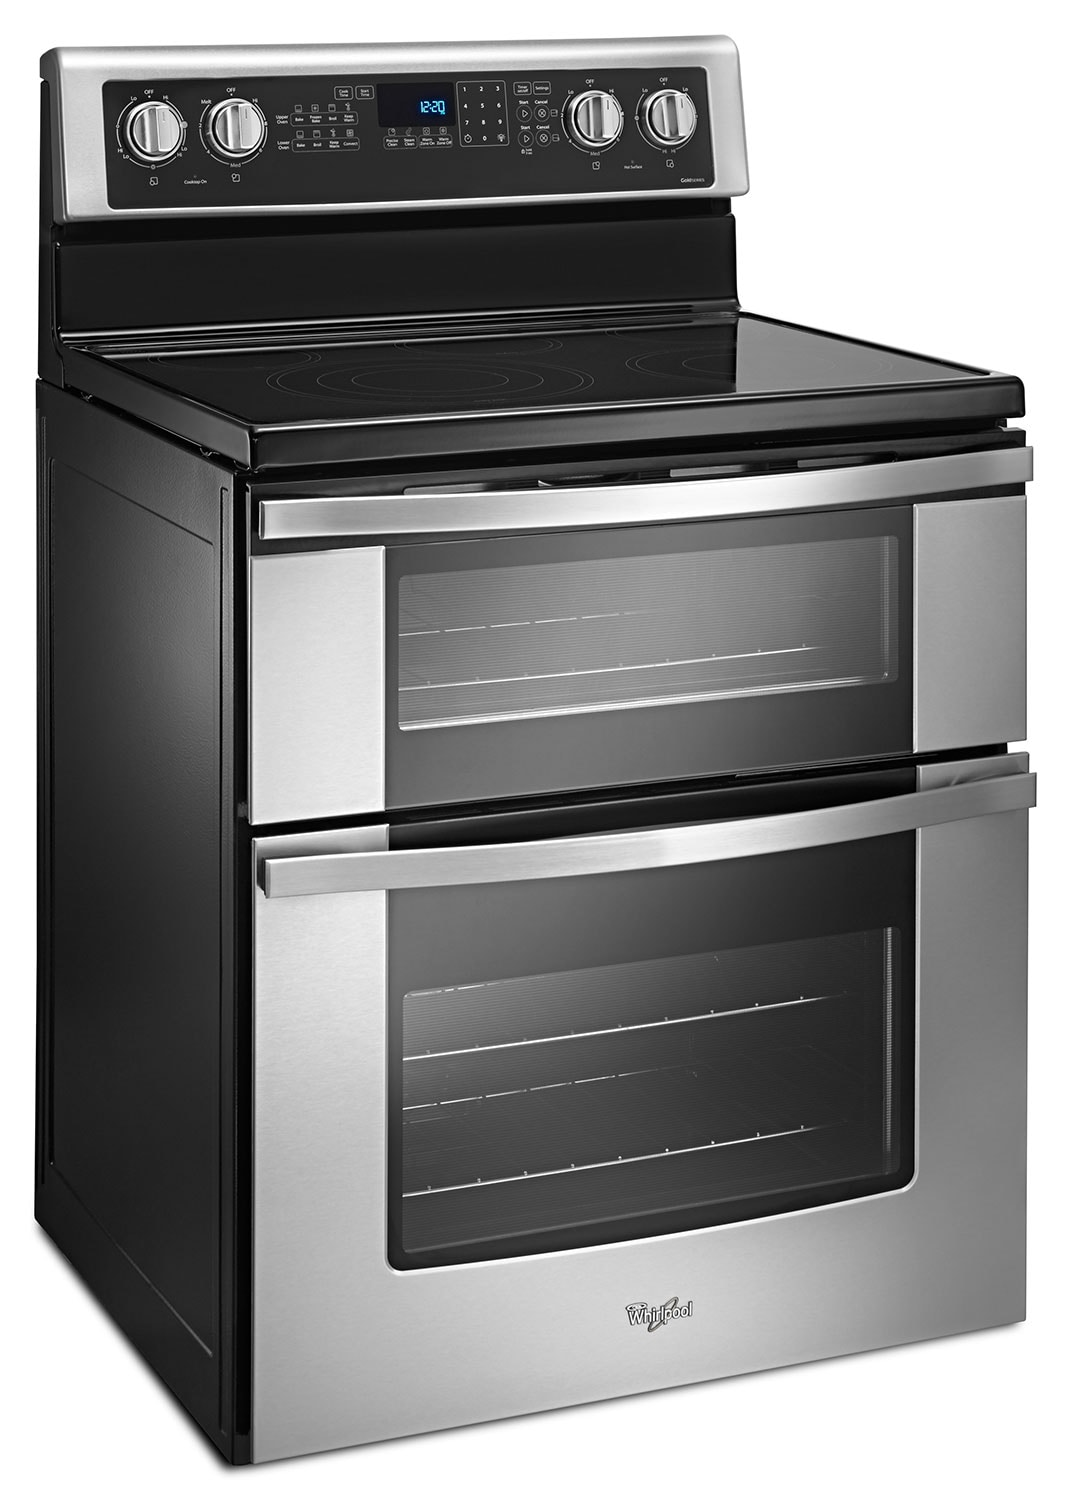 whirlpool stainless steel electric double range 67 cu ft ywge745c0fs - Double Oven Electric Range